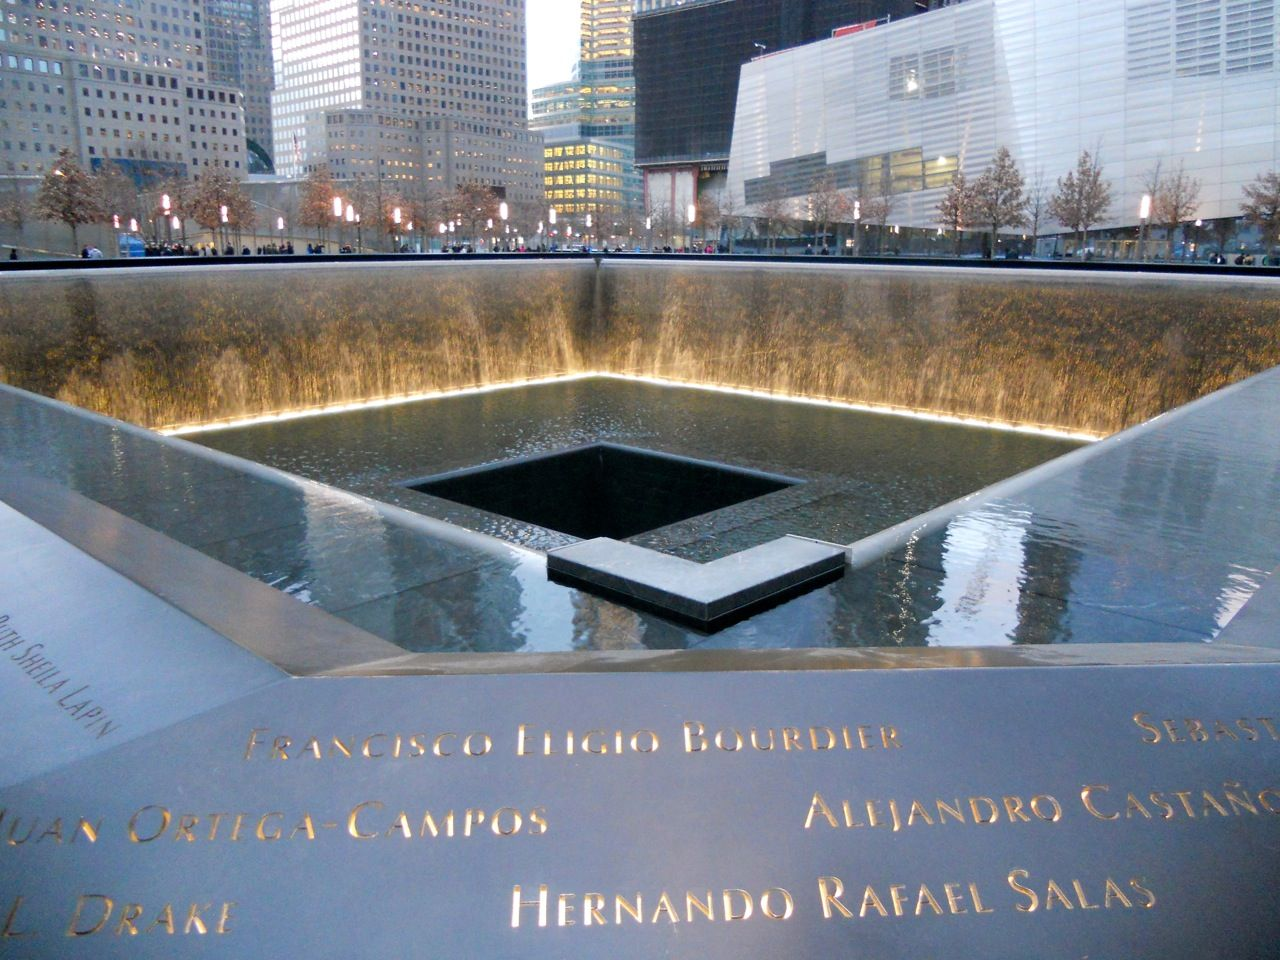 Image result for copyfree images quotes 9/11 memorial site